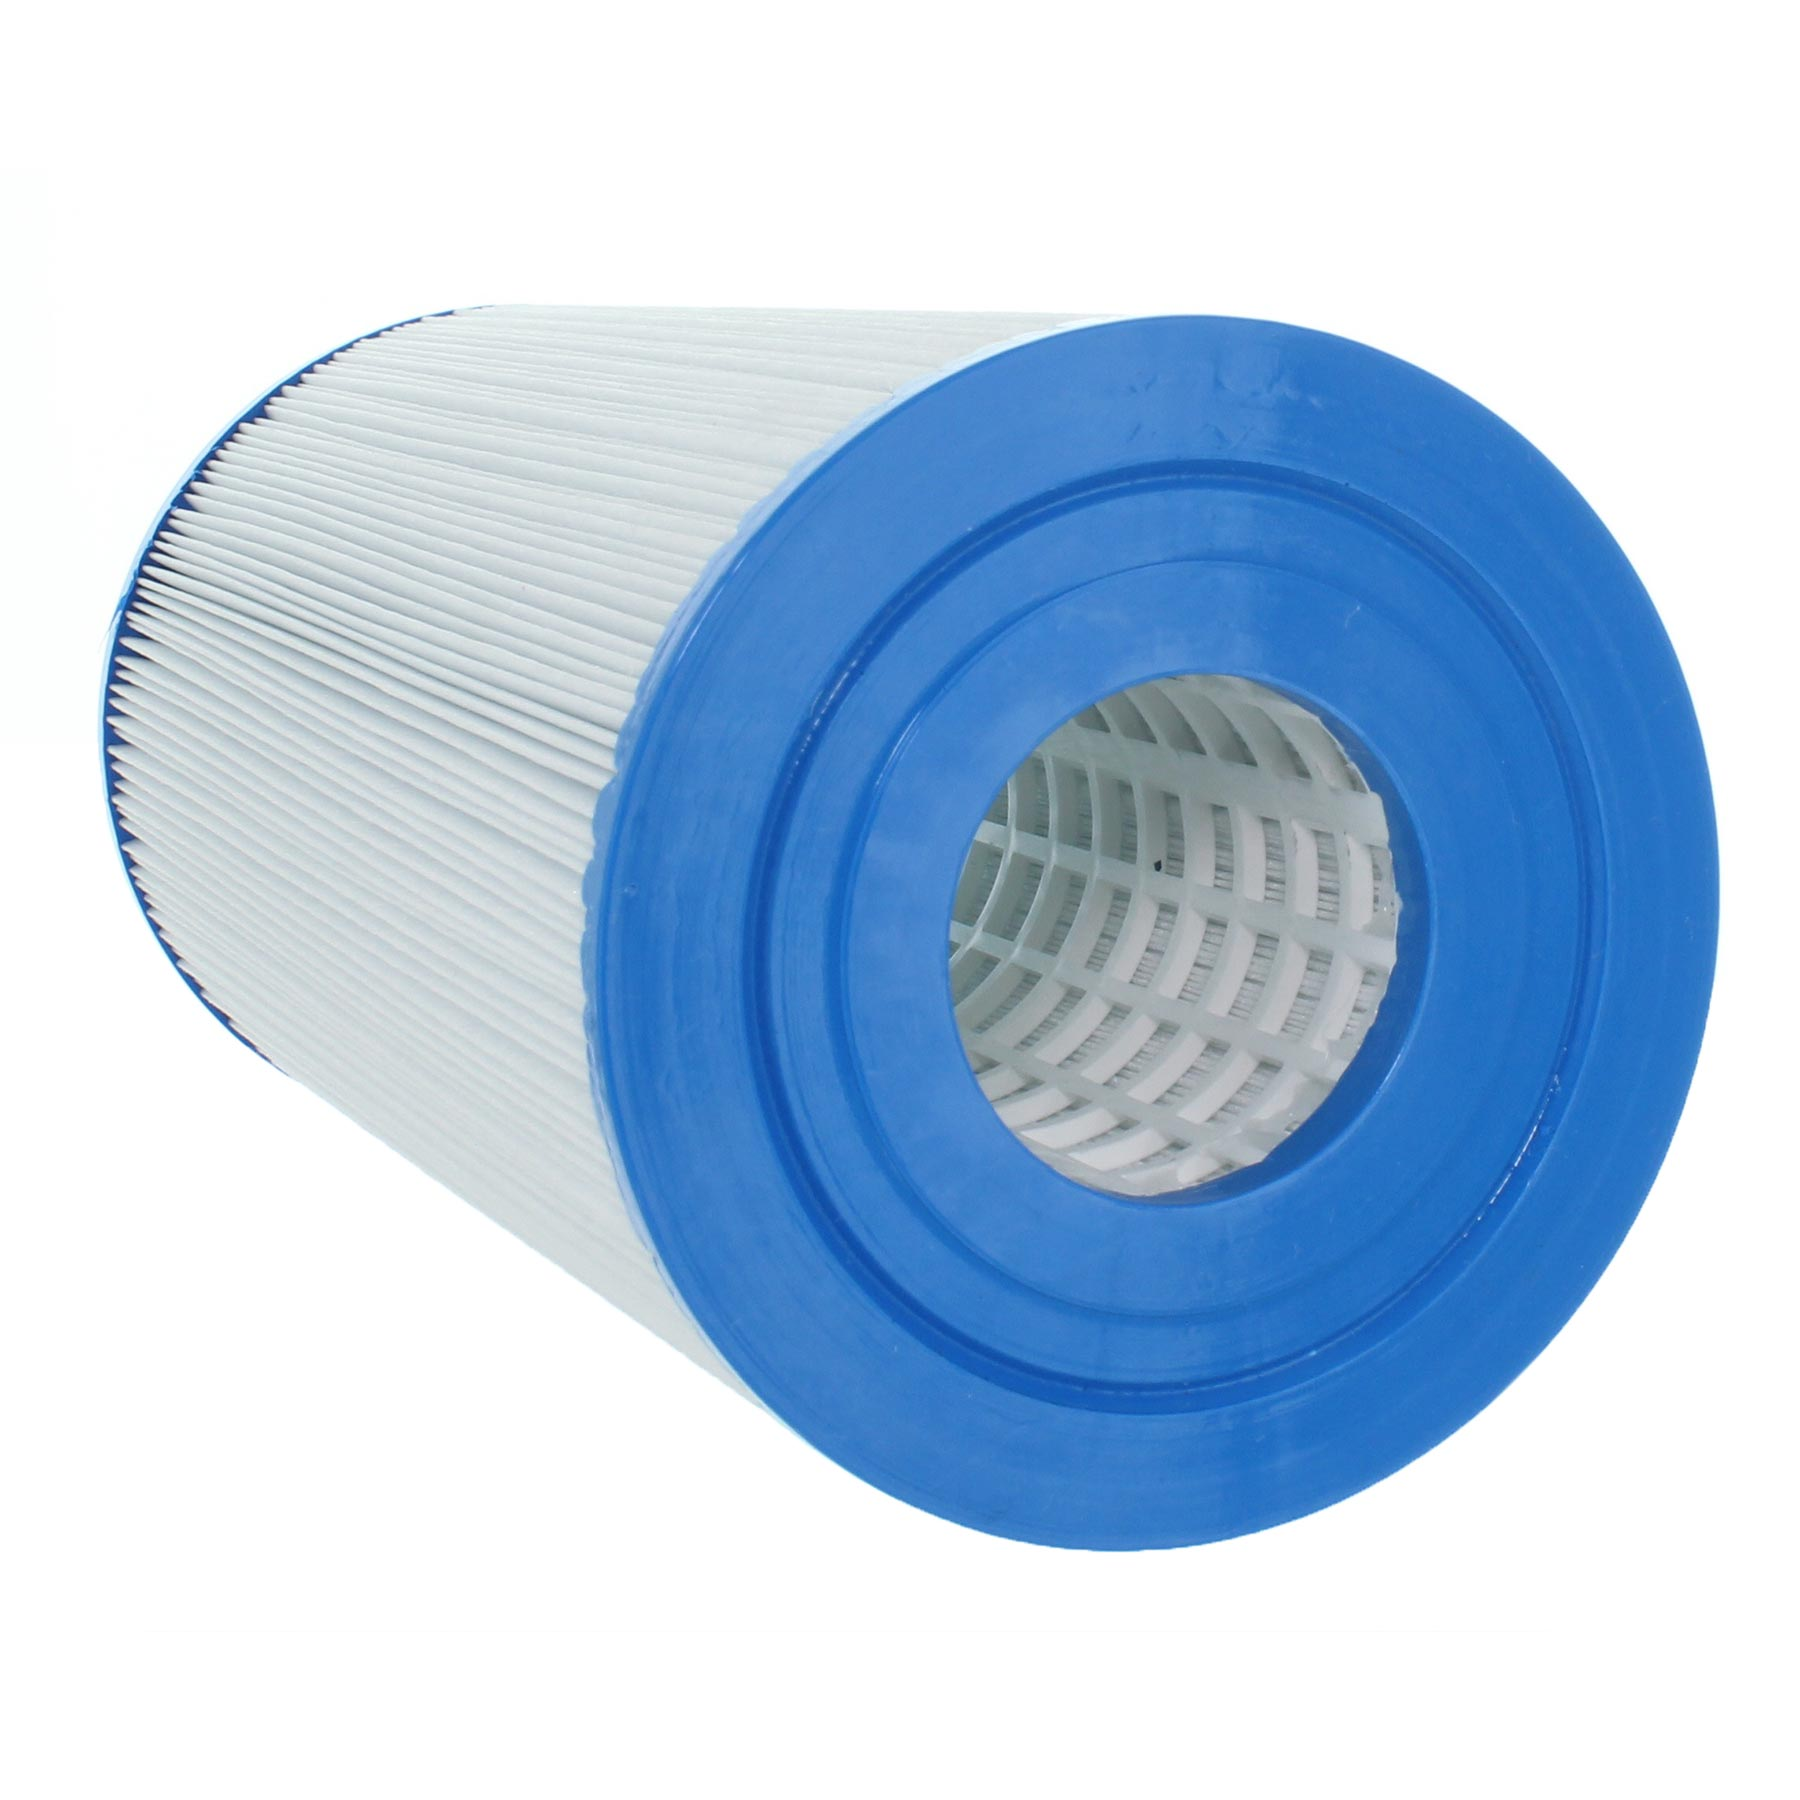 Replaces Unicel C-4335, Pleatco PRB35-IN • Pool & Spa Filter Cartridge-Filter Cartridge-FilterDeal.com